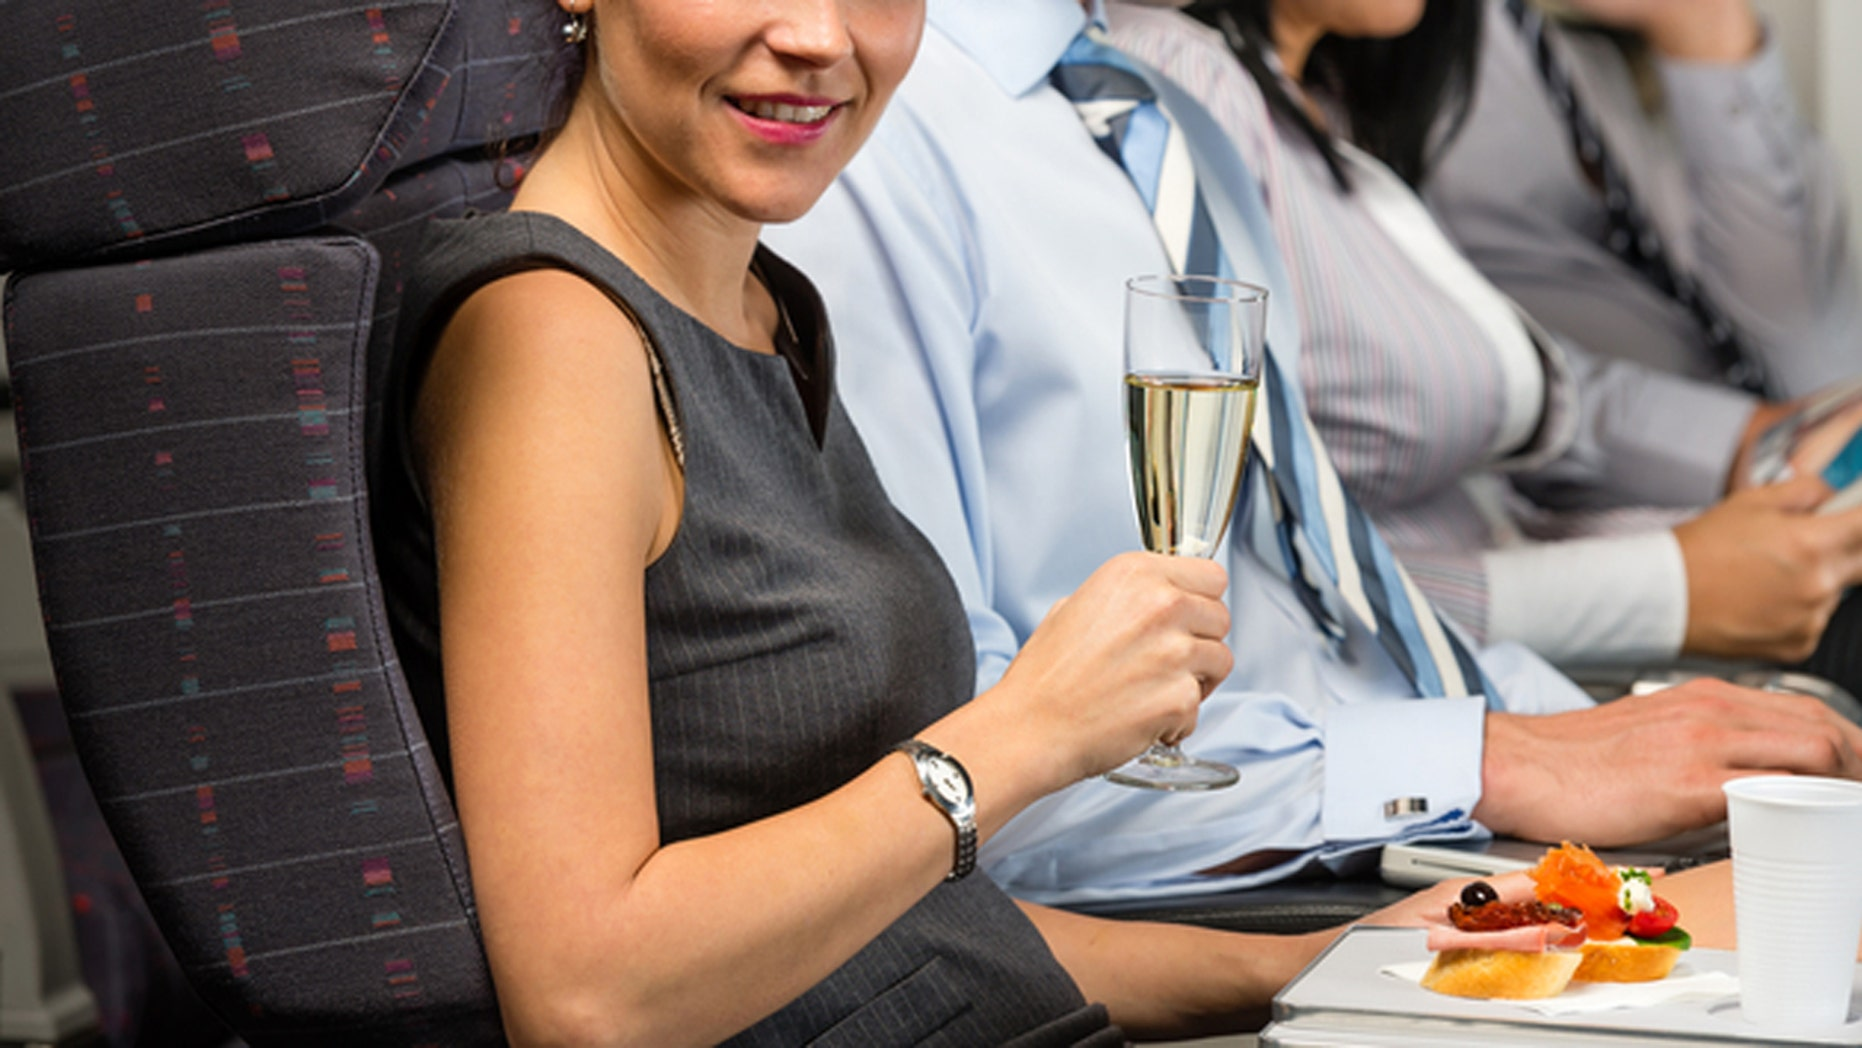 Should you imbibe next time you fly?